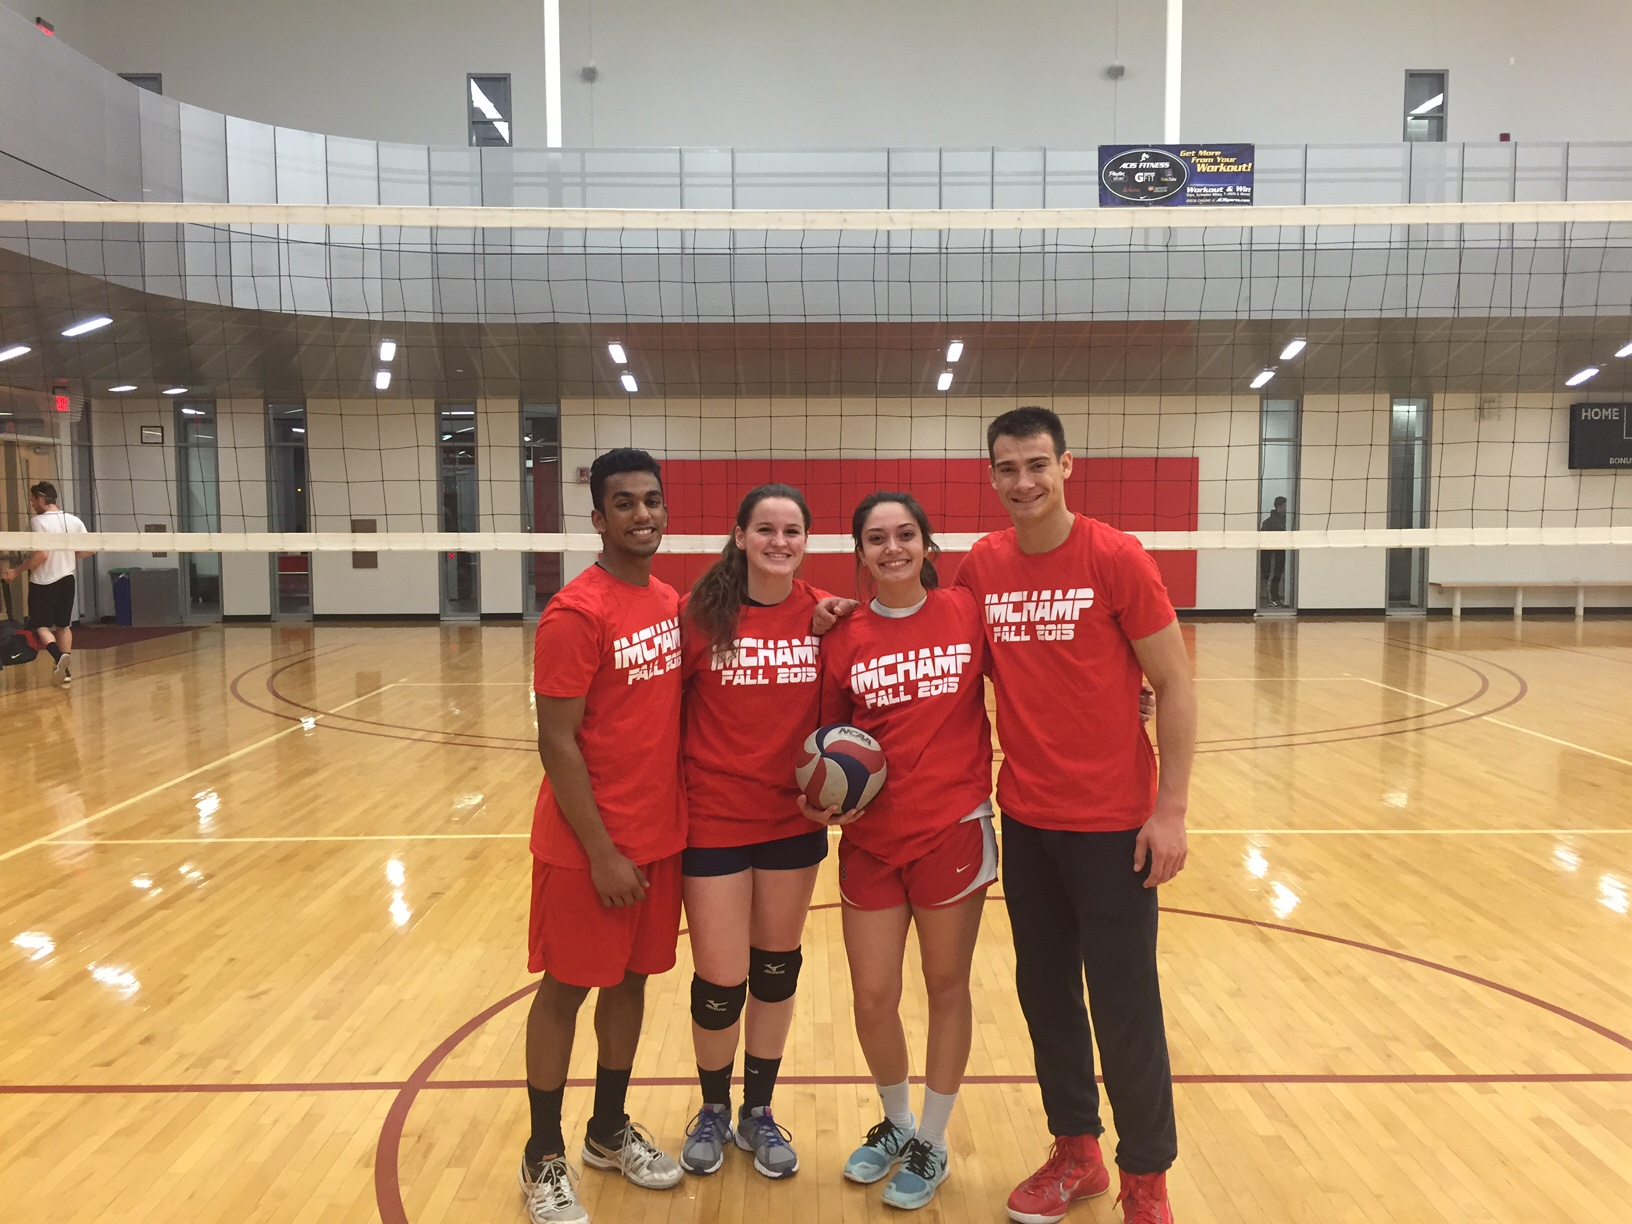 Setty Wap: Coed Competitive Volleyball Champions